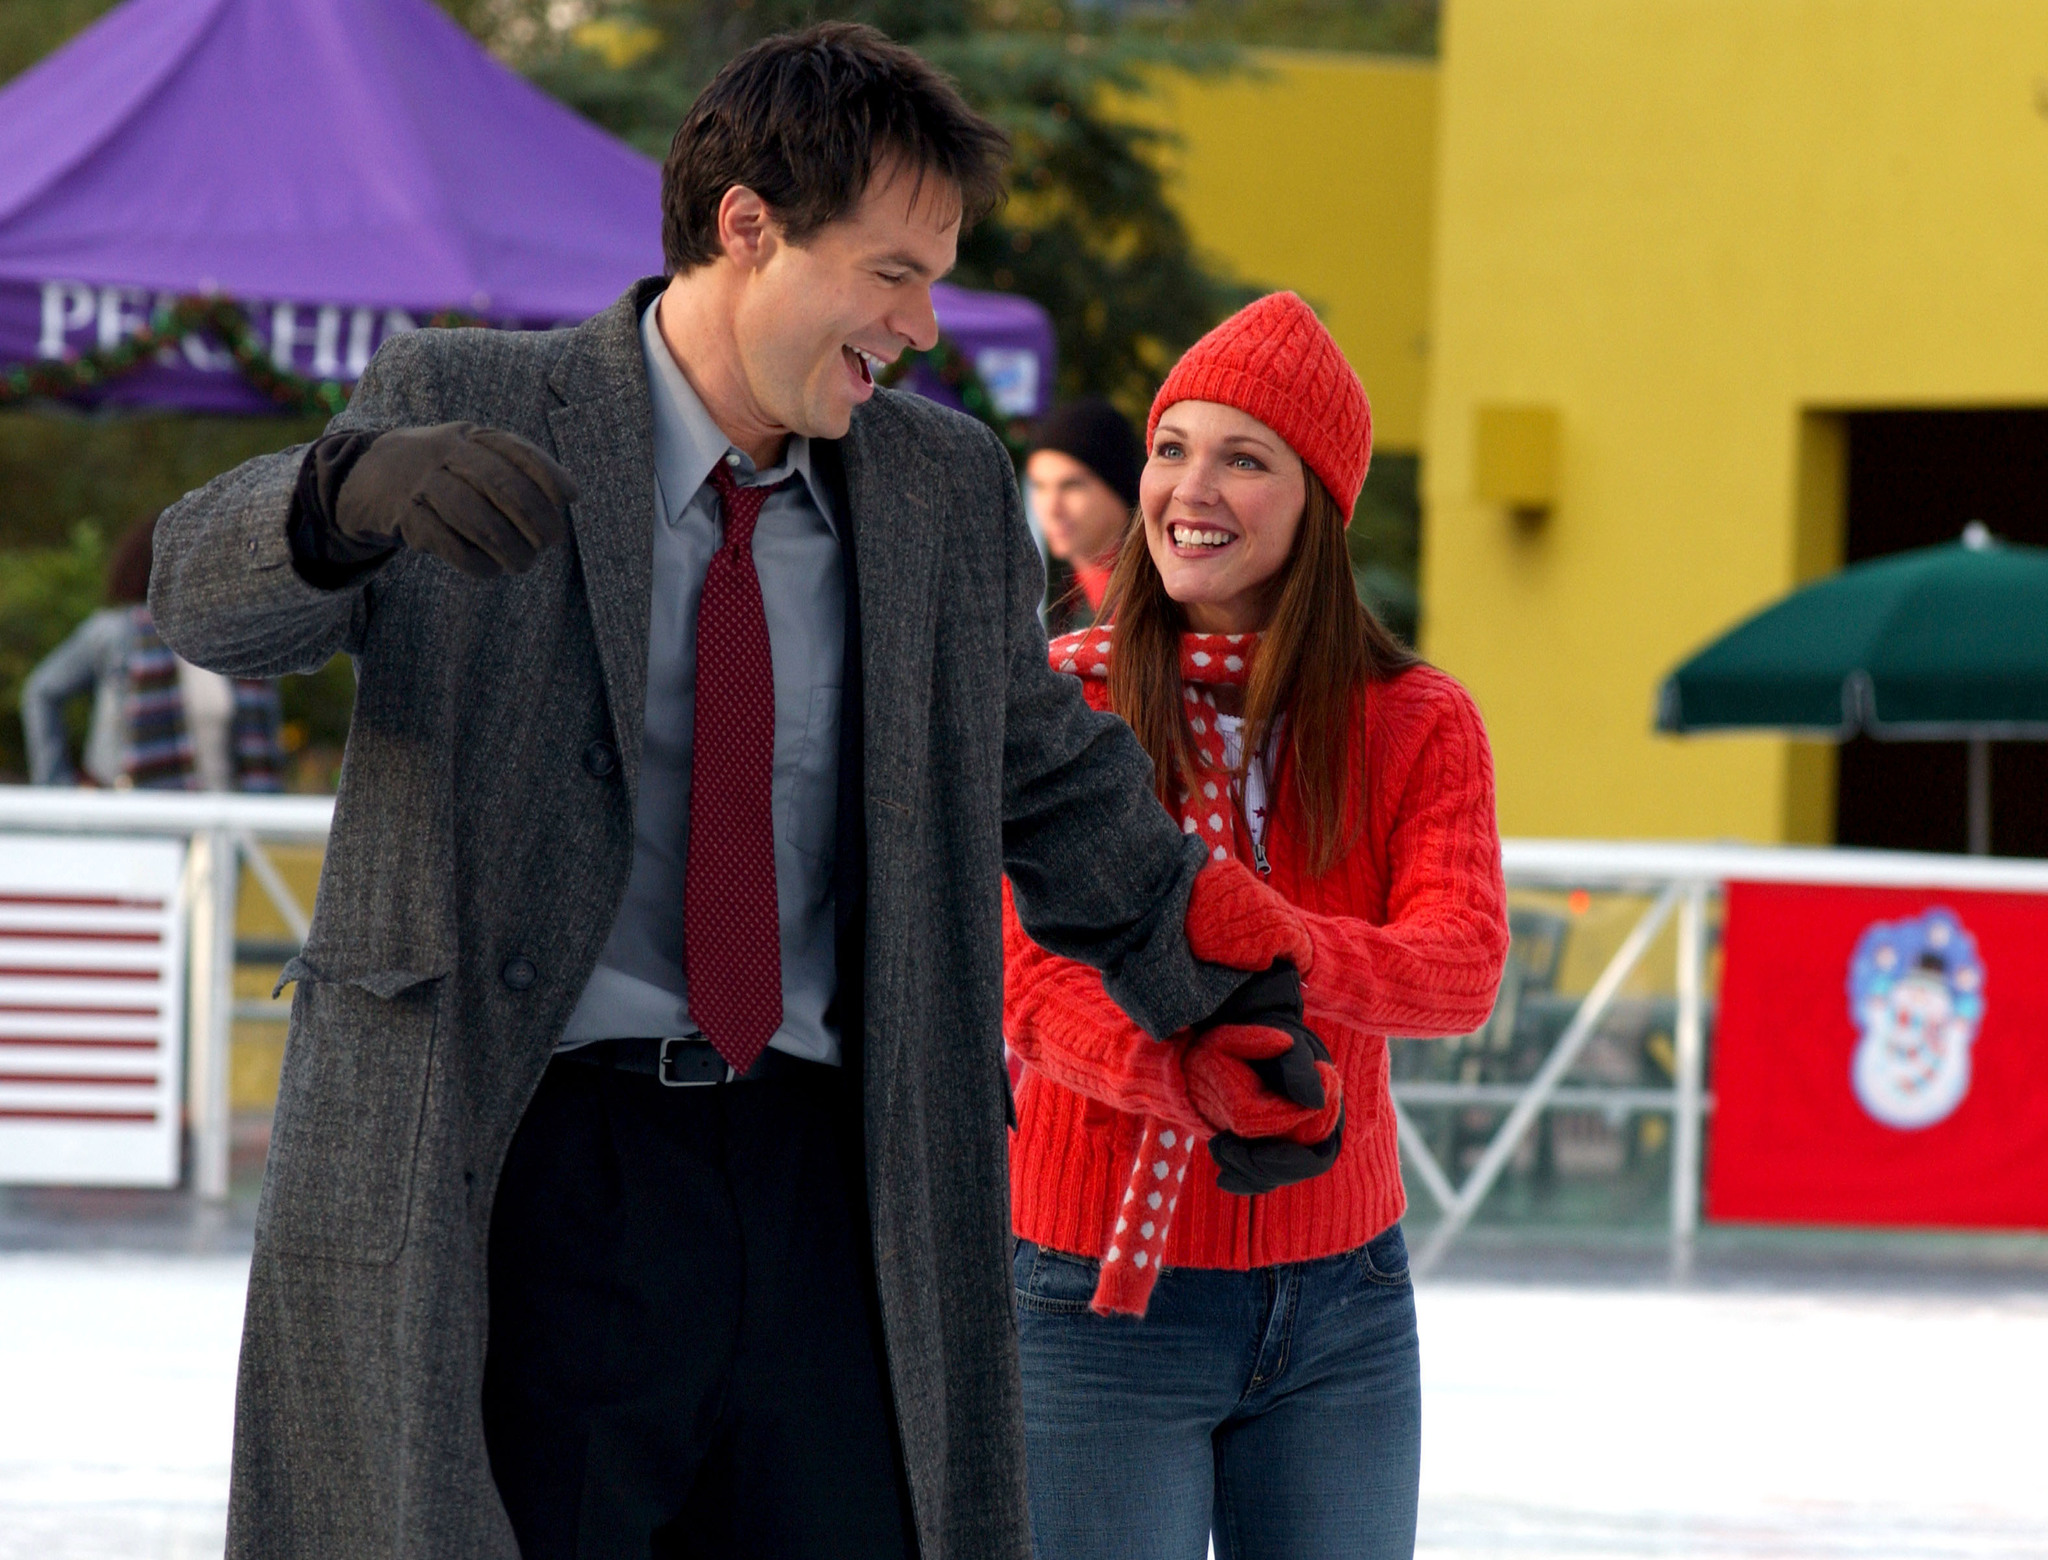 Patrick Muldoon and Kelli Williams in A Boyfriend for Christmas (2004)